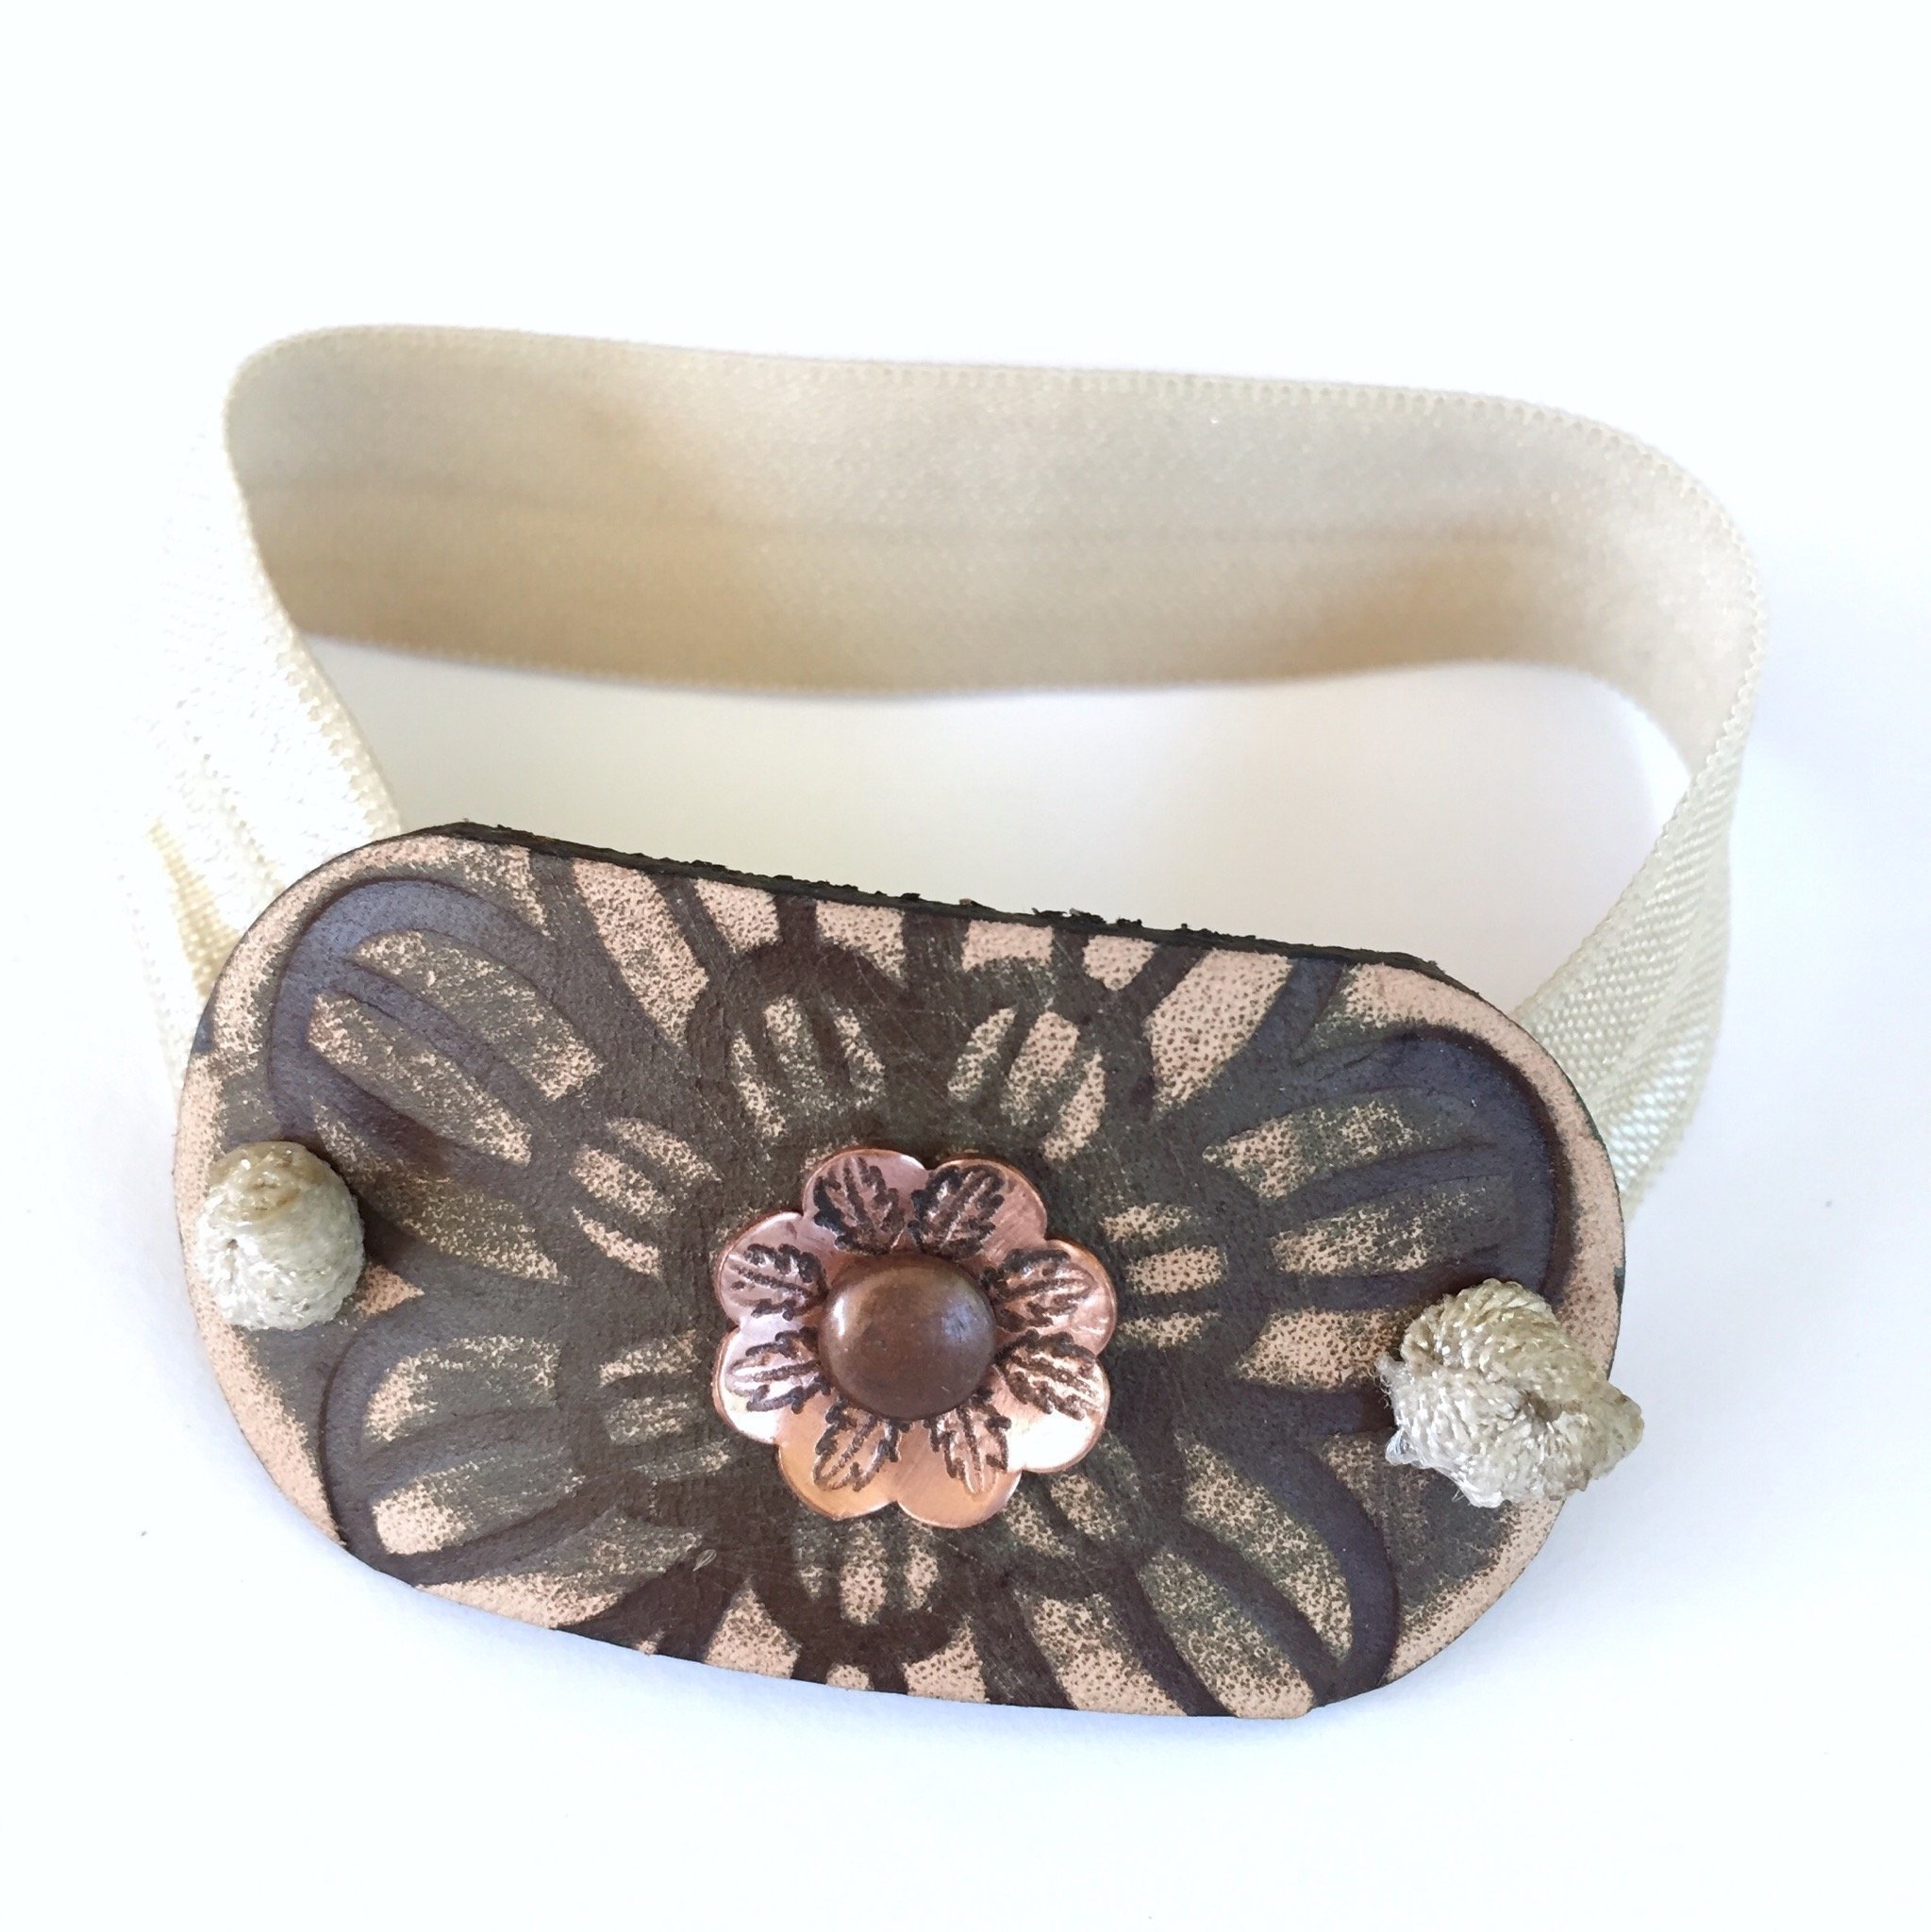 Boho Leather Ponytail Holder Oval with Copper Flower and Flat Elastic by BANDANA GIRL Ponytail Wrap Hair Accessory Gift For Her Gift Idea for Her for Women with Long Hair